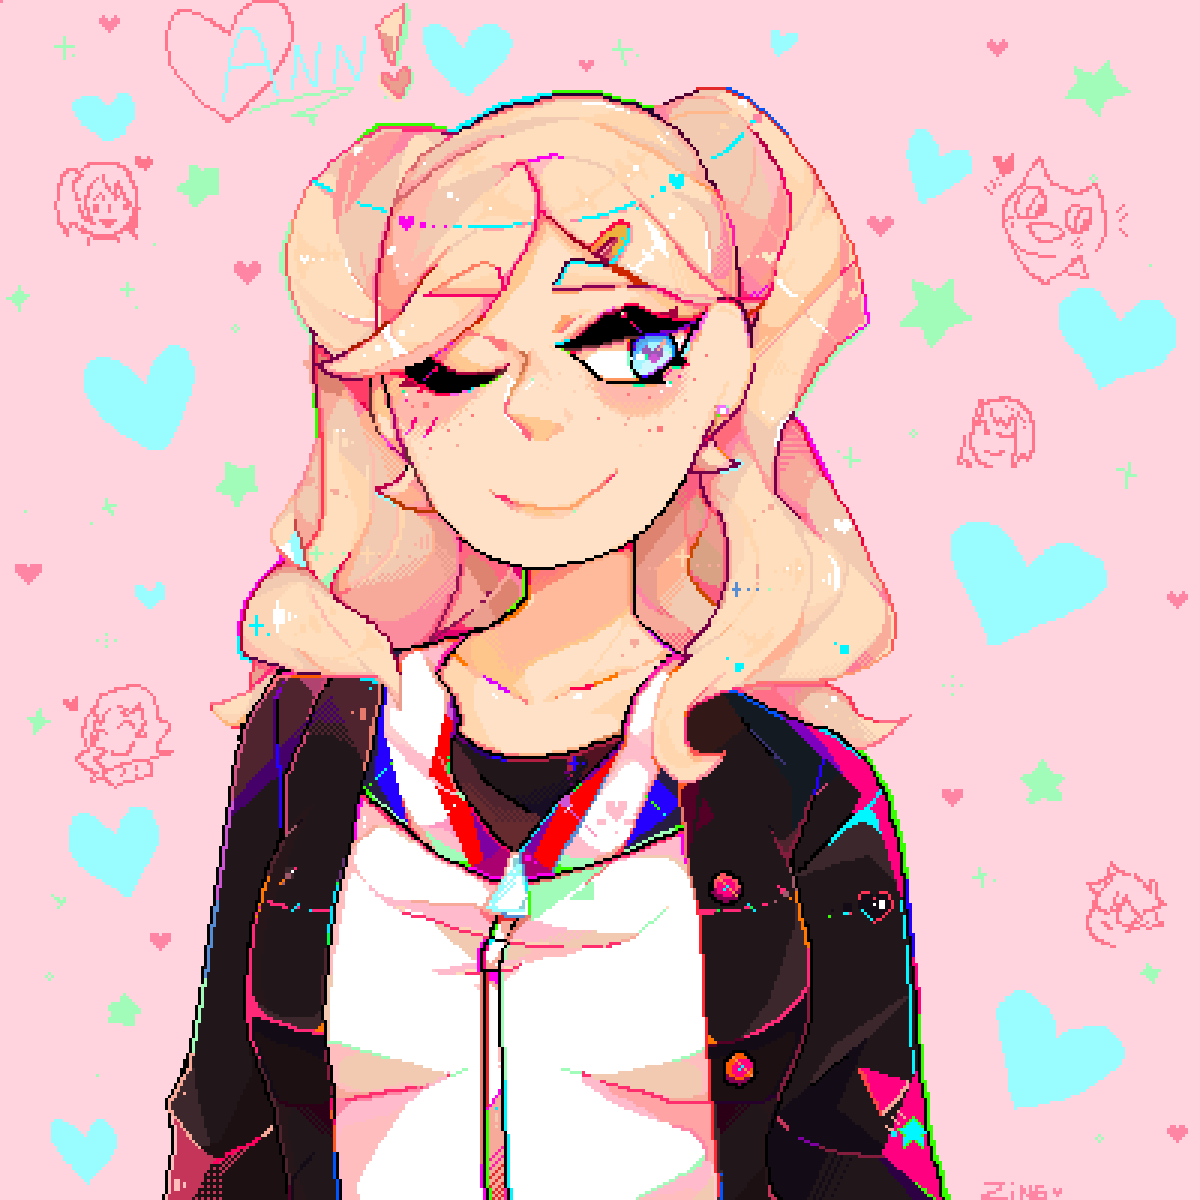 MARRY ME ANN AAA